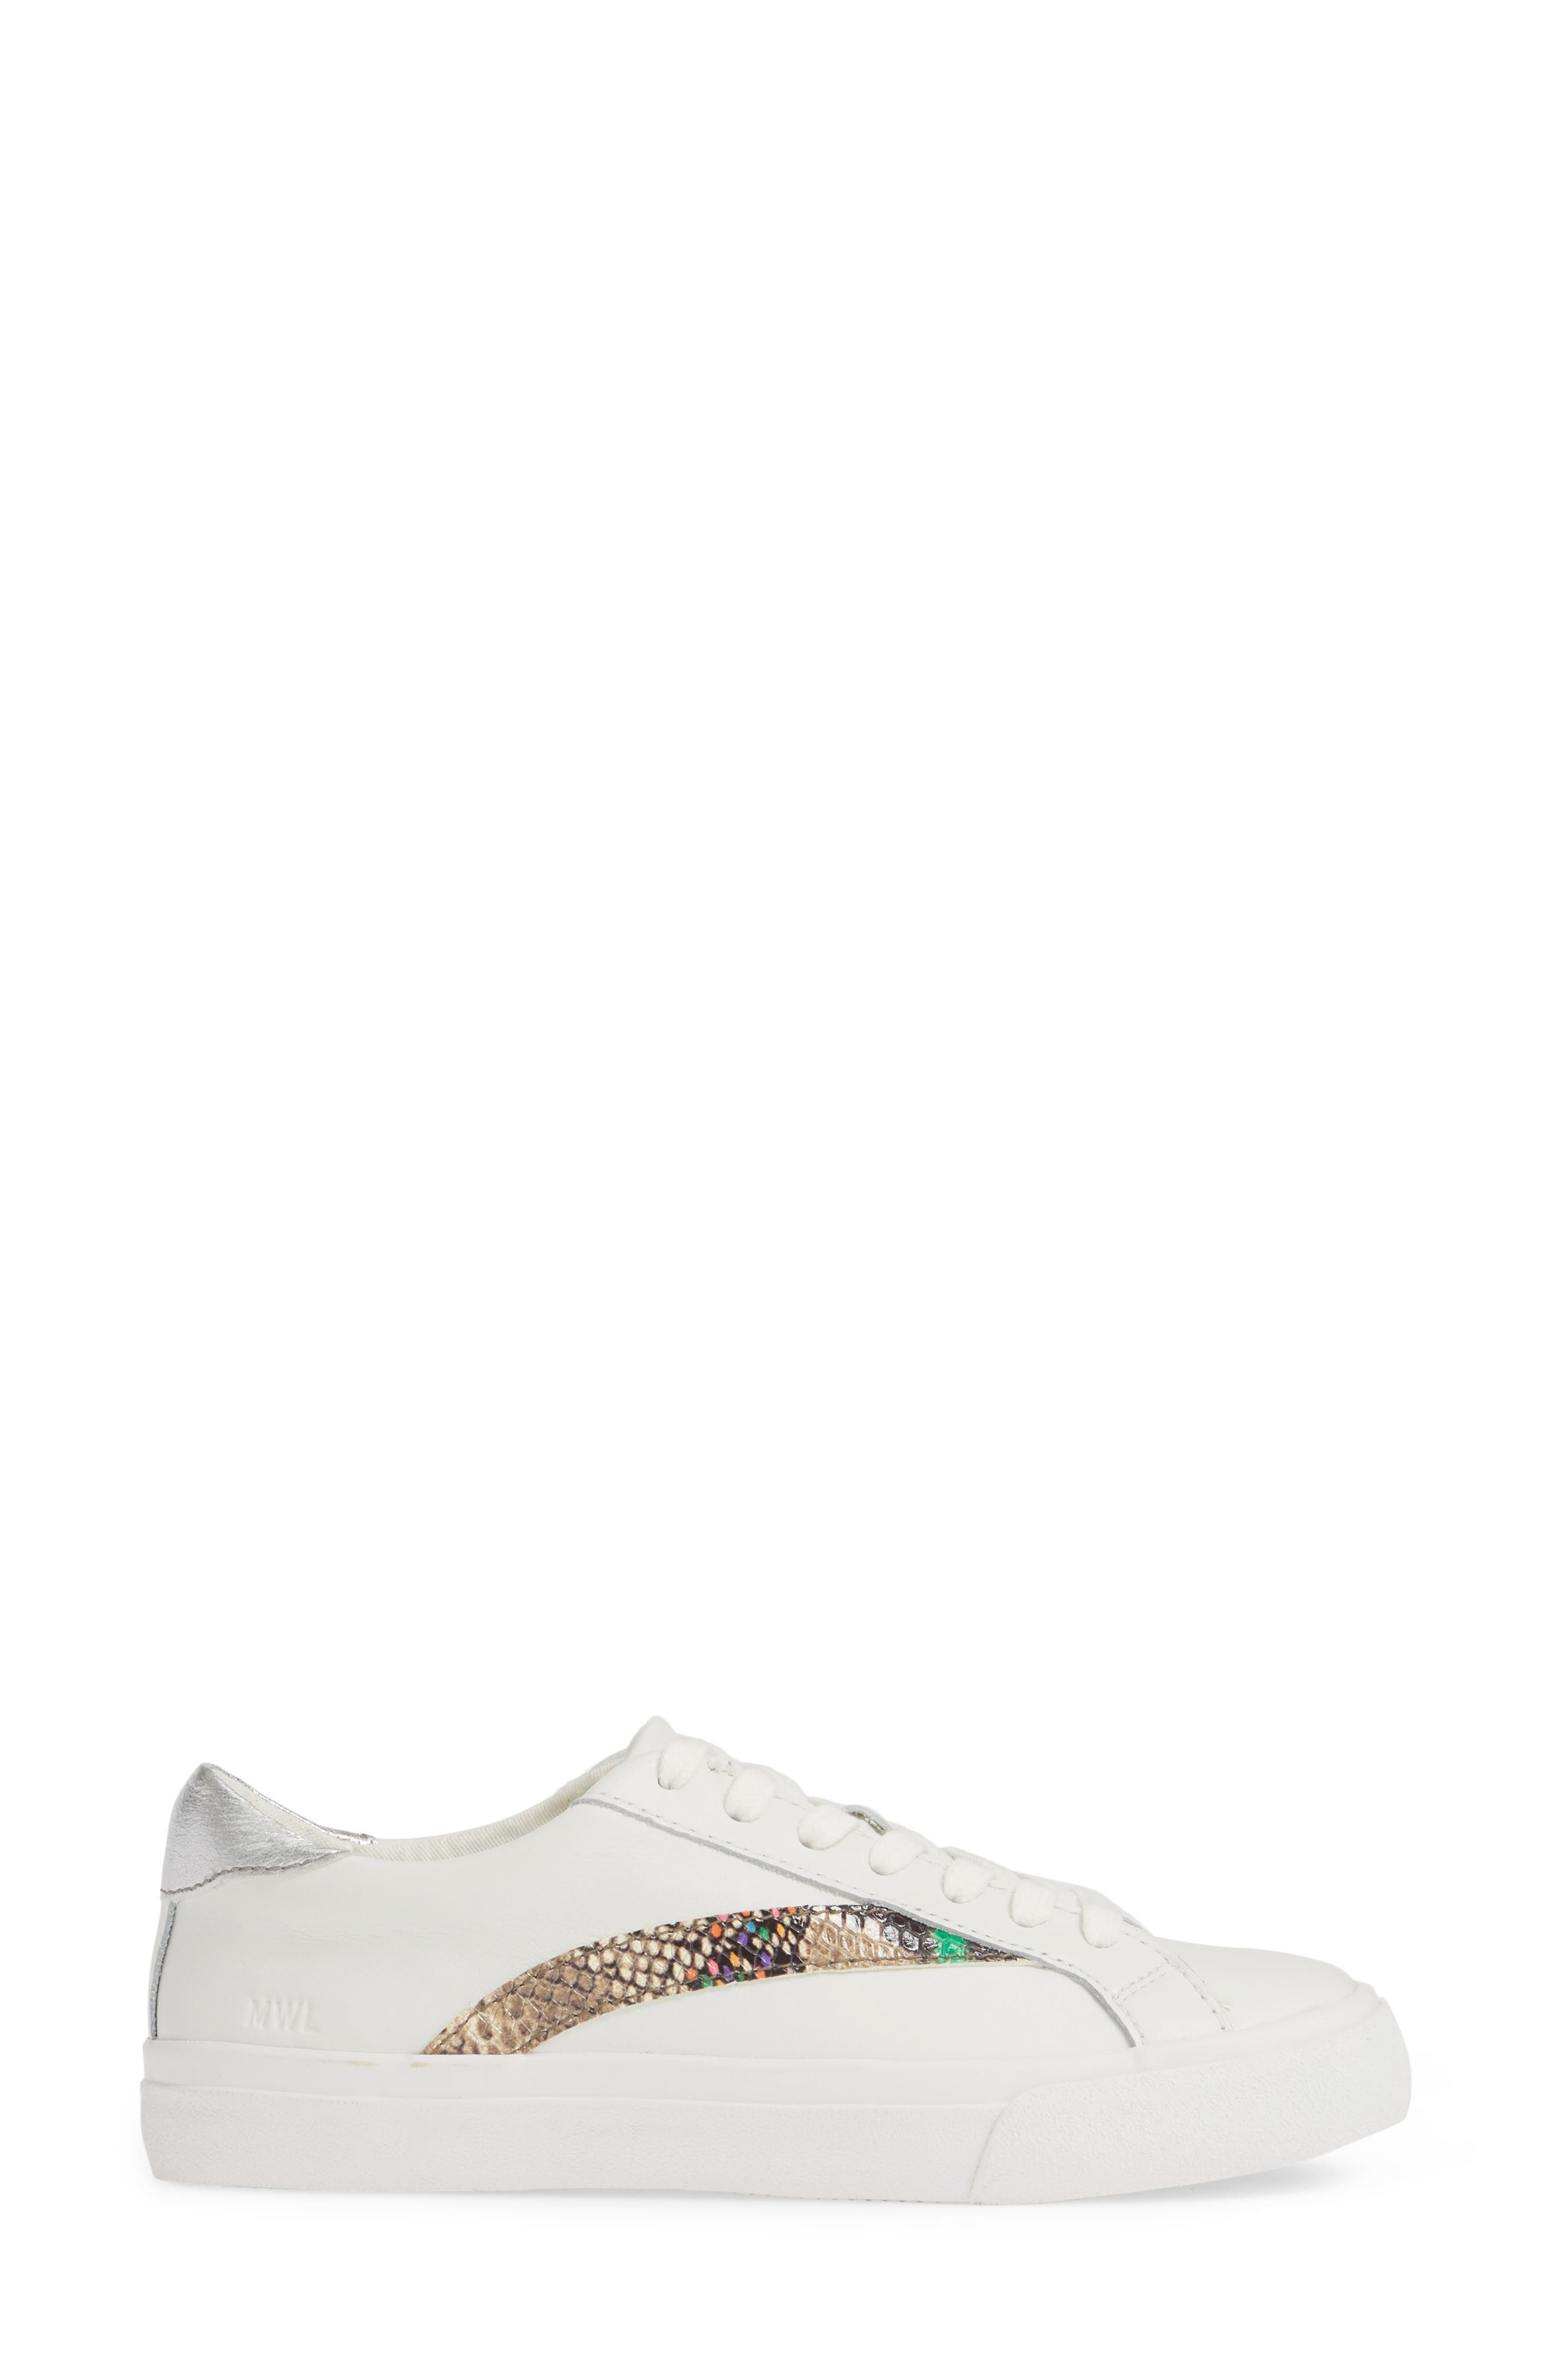 MADEWELL, Delia Sneaker, Alternate thumbnail 4, color, LIGHT UMBER MULTI